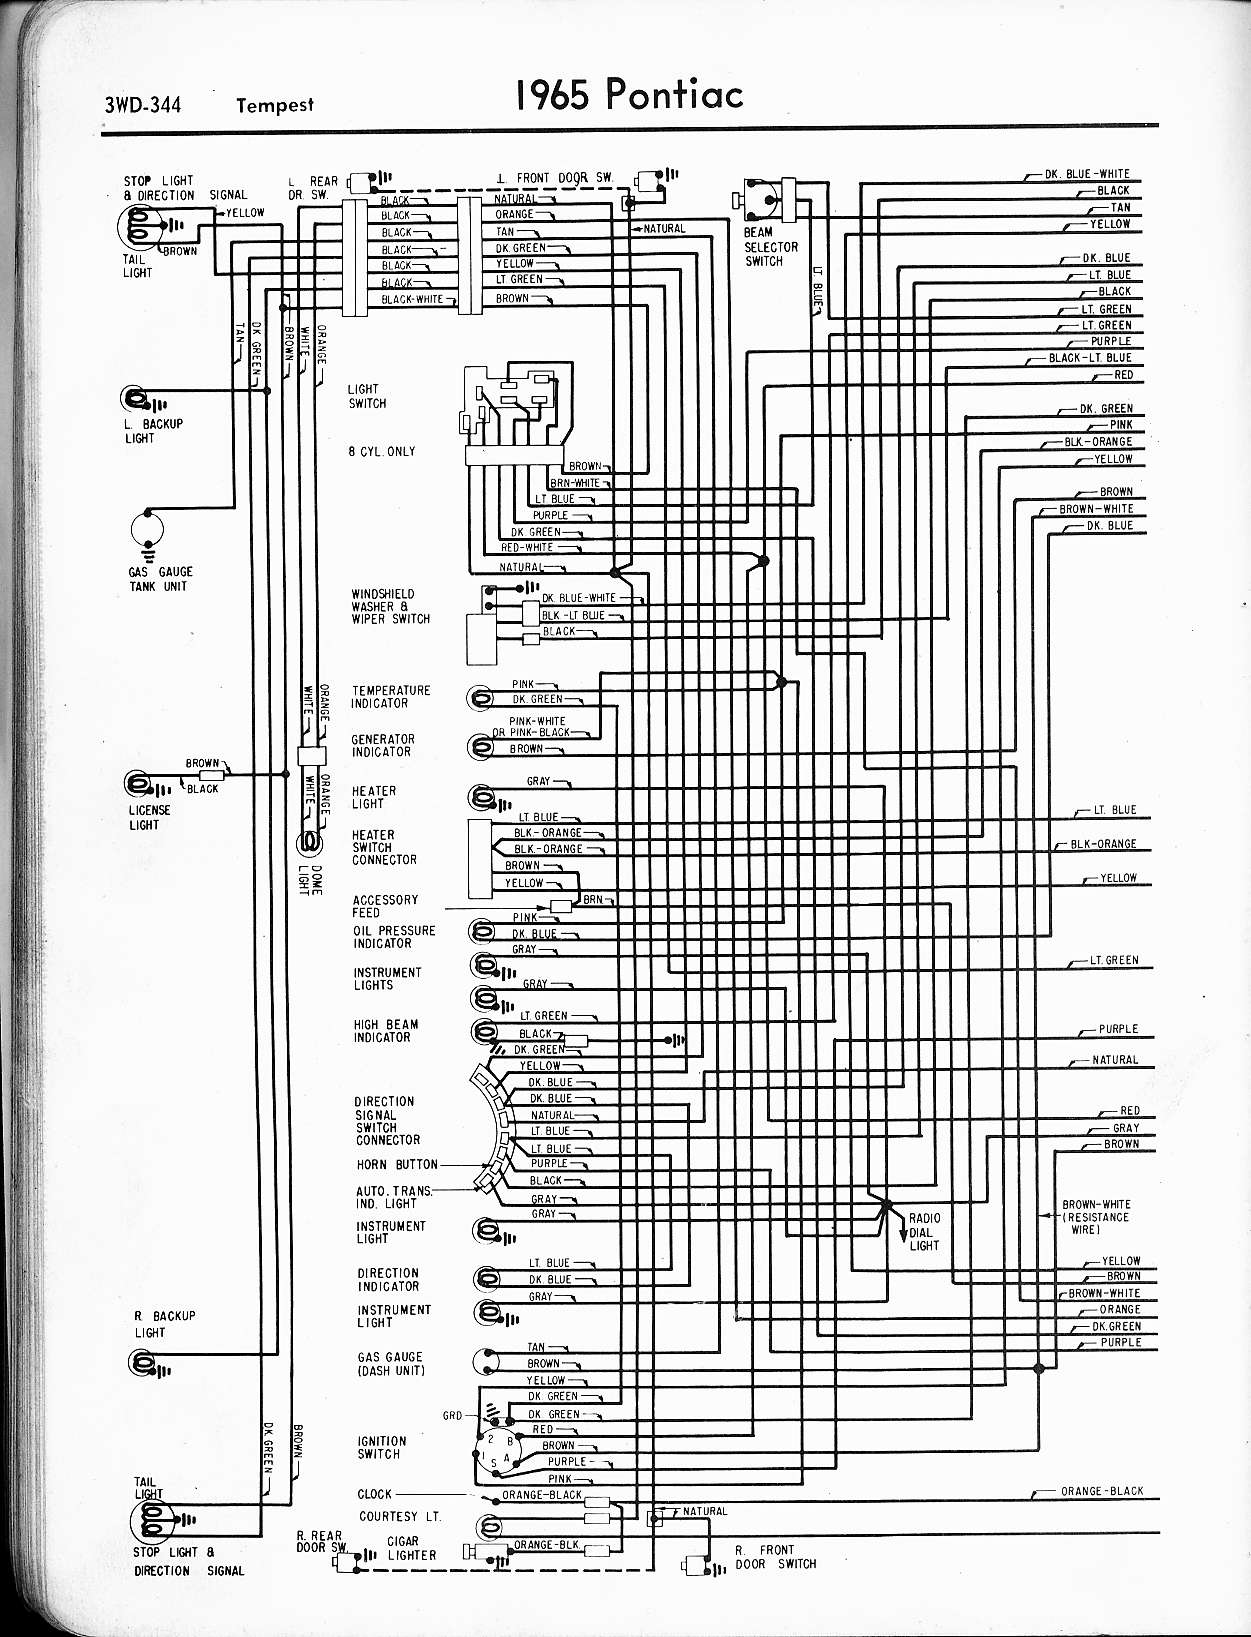 1970 Chevelle Wire Diagram - Wiring Data